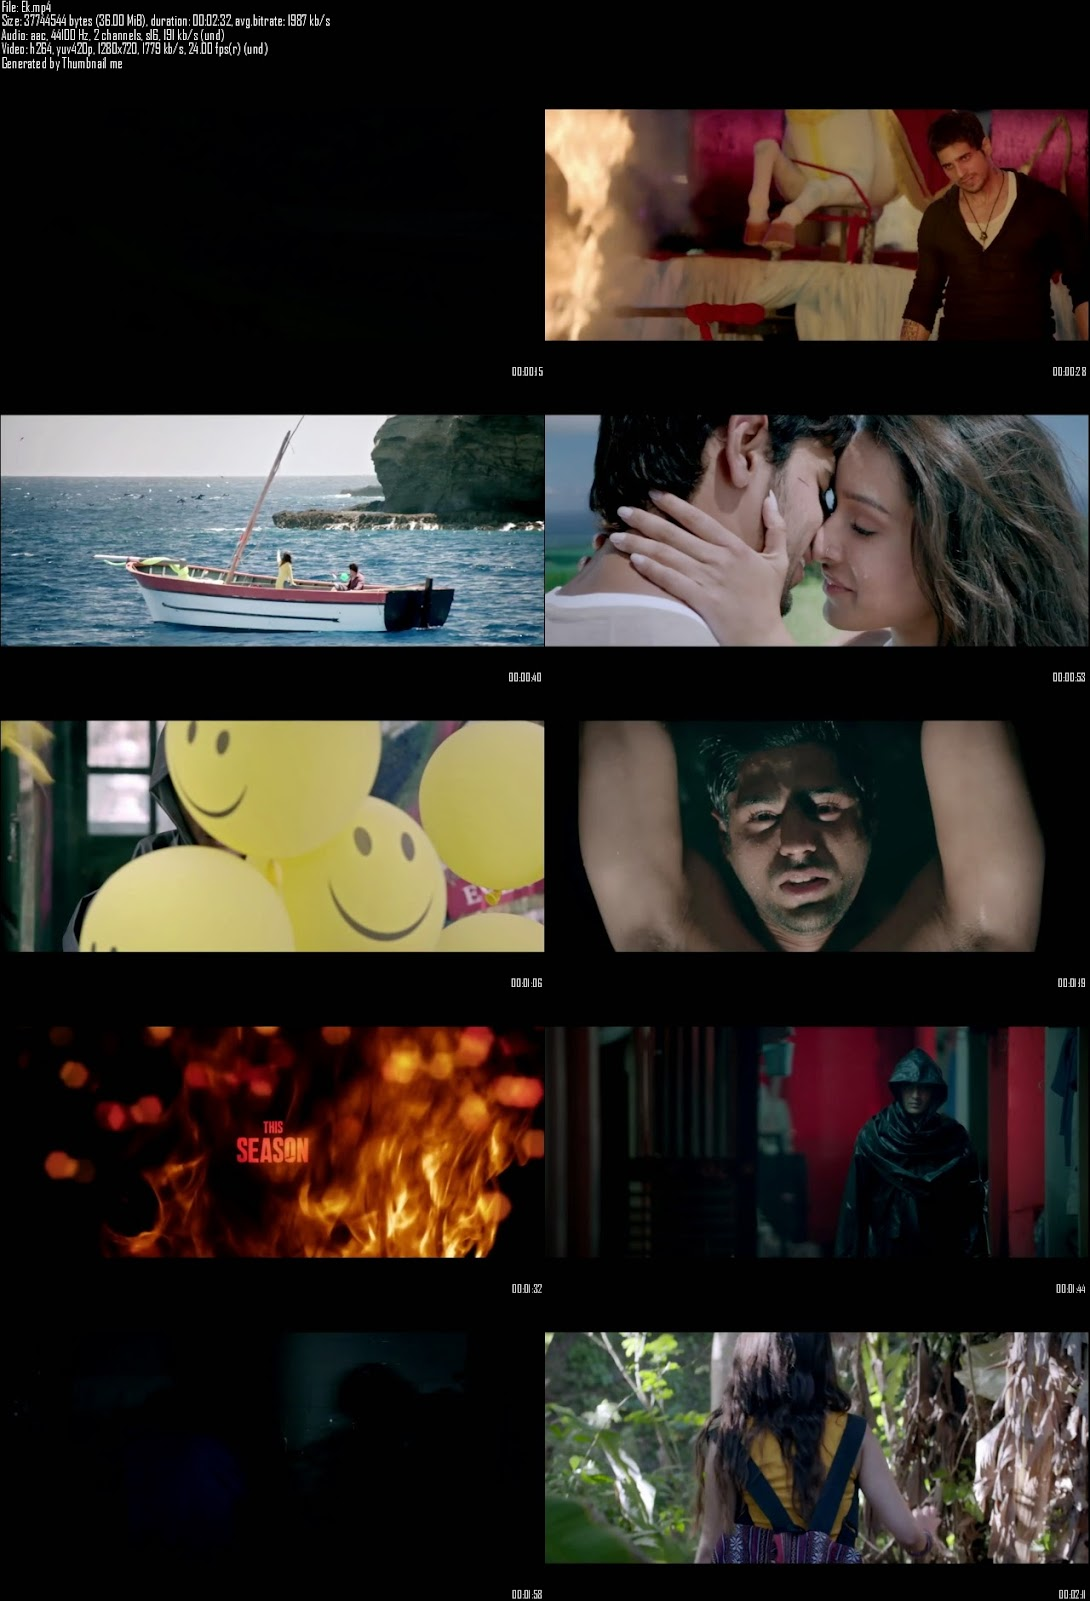 Mediafire Resumable Download Link For Teaser Promo Of Ek Villain (2014)